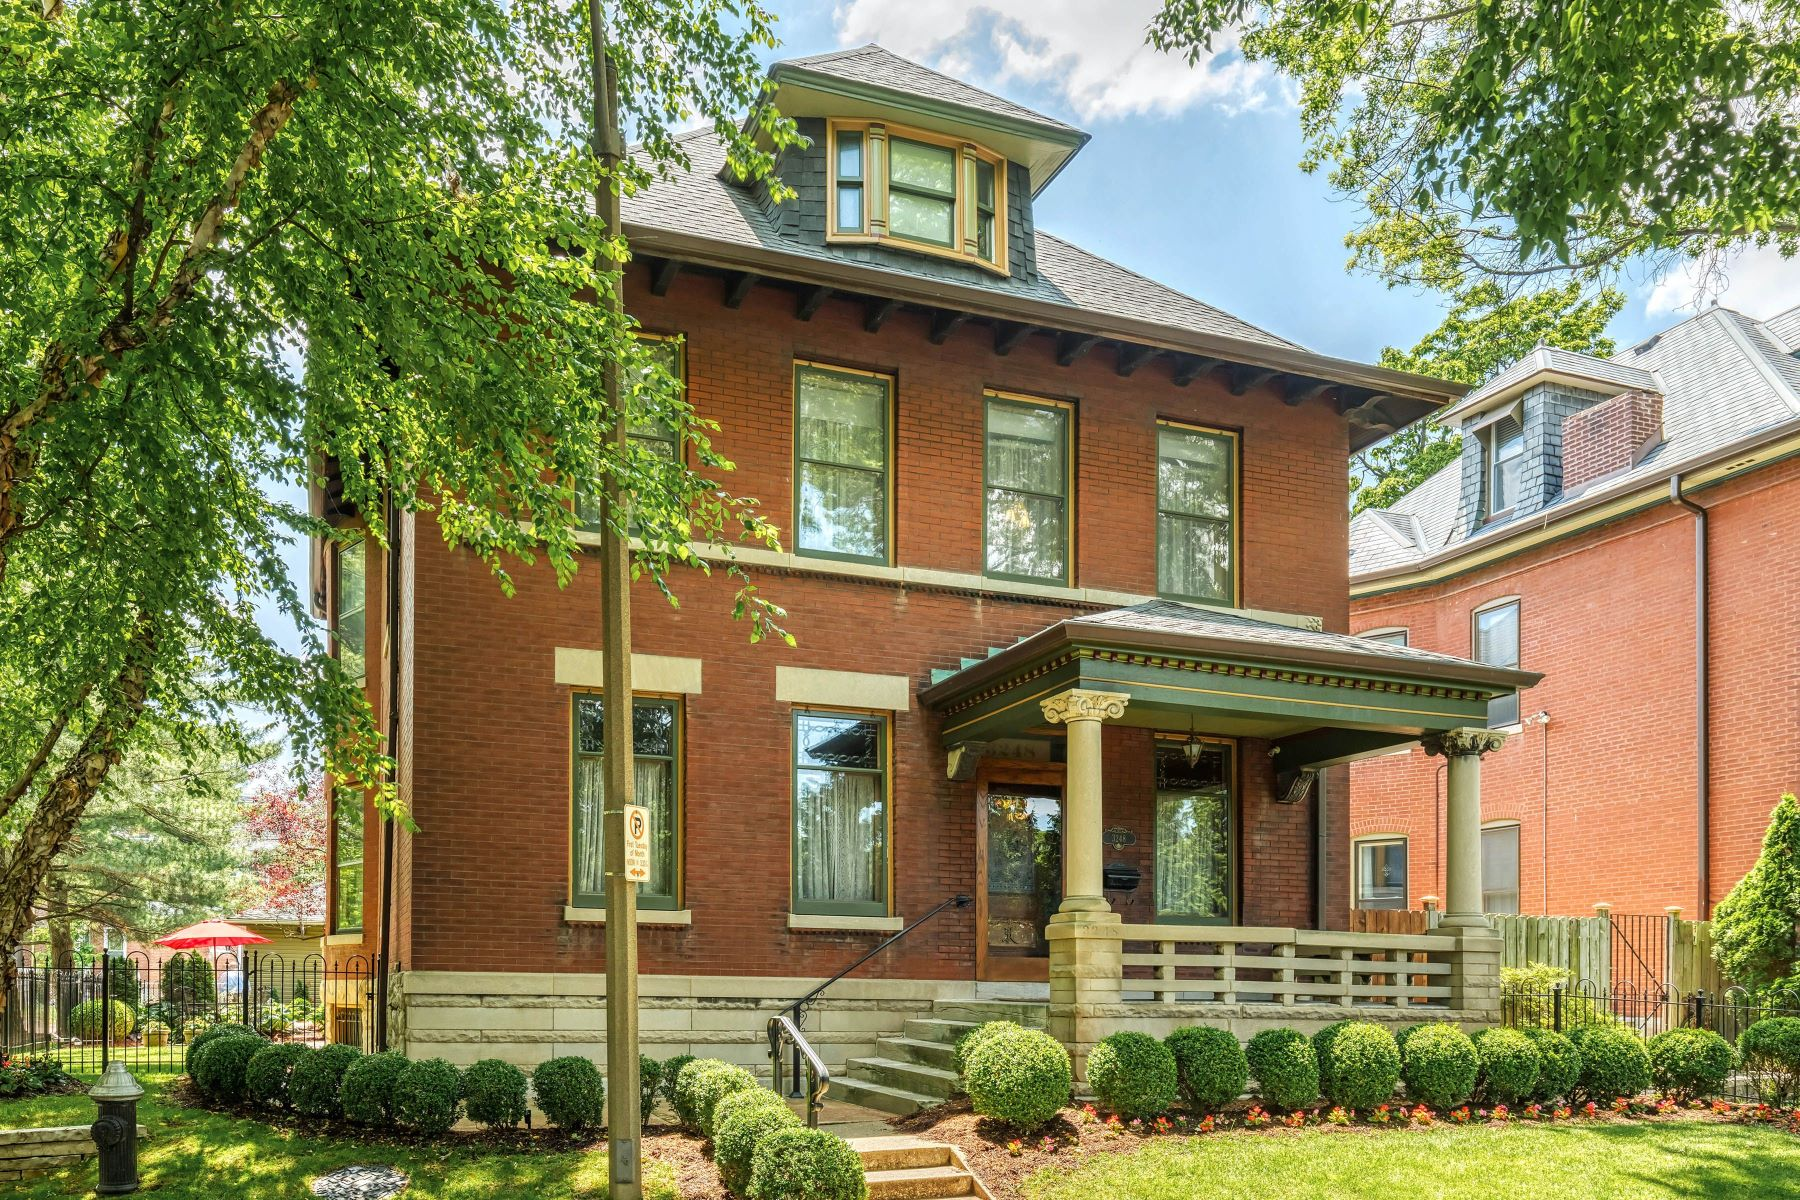 Single Family Homes for Sale at Historic Home on Millionaire's Row 3248 Copelin Ave. St. Louis, Missouri 63104 United States